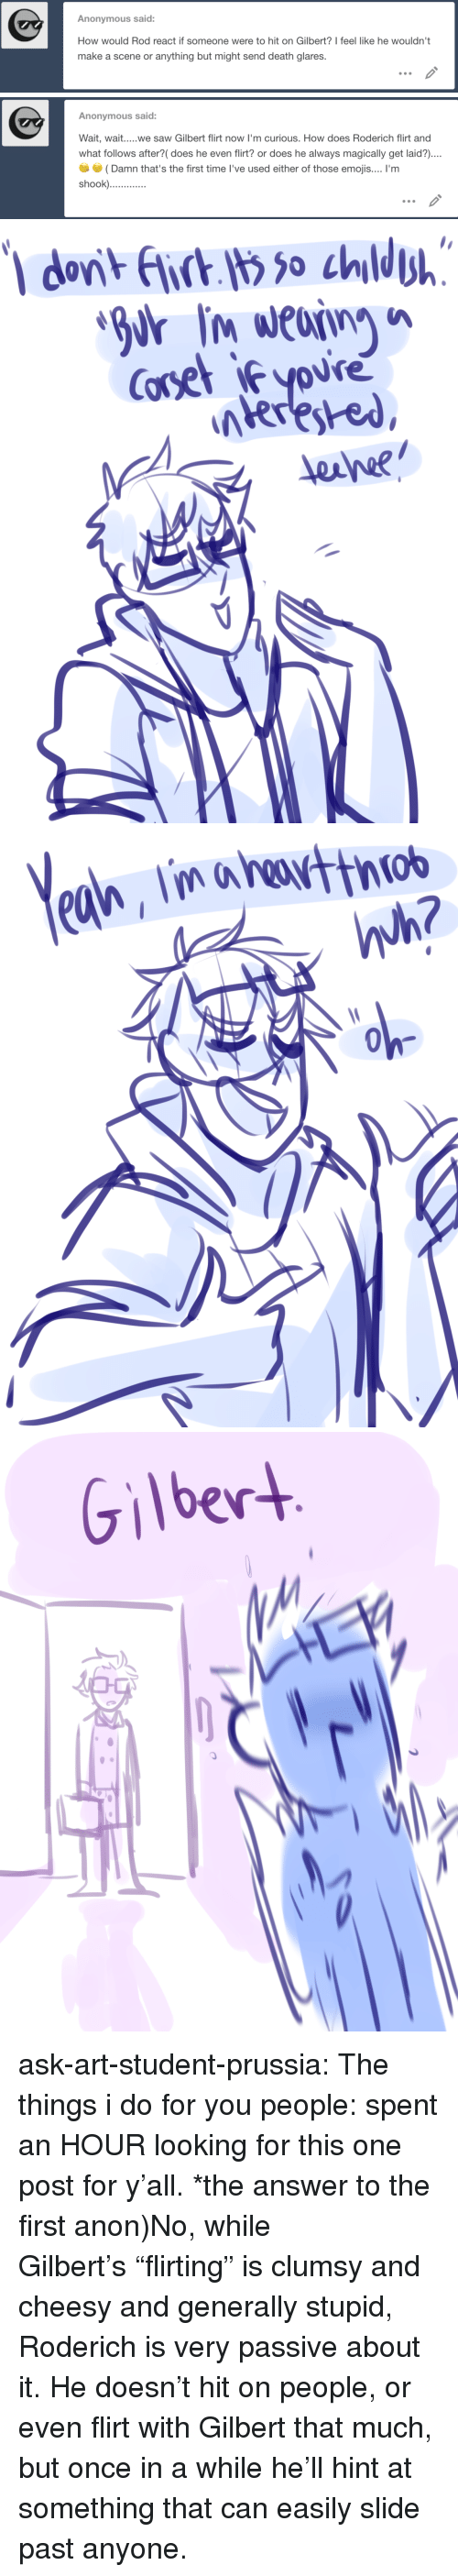 """Saw, Target, and Tumblr: Anonymous said:  How would Rod react if someone were to hit on Gilbert? I feel like he wouldn't  make a scene or anything but might send death glares.   Anonymous said:  Wait, wait....we saw Gilbert flirt now l'm curious. How does Roderich flirt and  what follows after?( does he even flirt? or does he always magically get laid?)....  (Damn that's the first time I've used either of those emojis.... 'm   Coset iyoure  eane?   golw  0   Gilber ask-art-student-prussia:  The things i do for you people: spent an HOUR looking for this one post for y'all. *the answer to the first anon)No, while Gilbert's""""flirting"""" is clumsy and cheesy and generally stupid, Roderich is very passive about it. He doesn't hit on people, or even flirt with Gilbert that much, but once in a while he'll hint at something that can easily slide past anyone."""